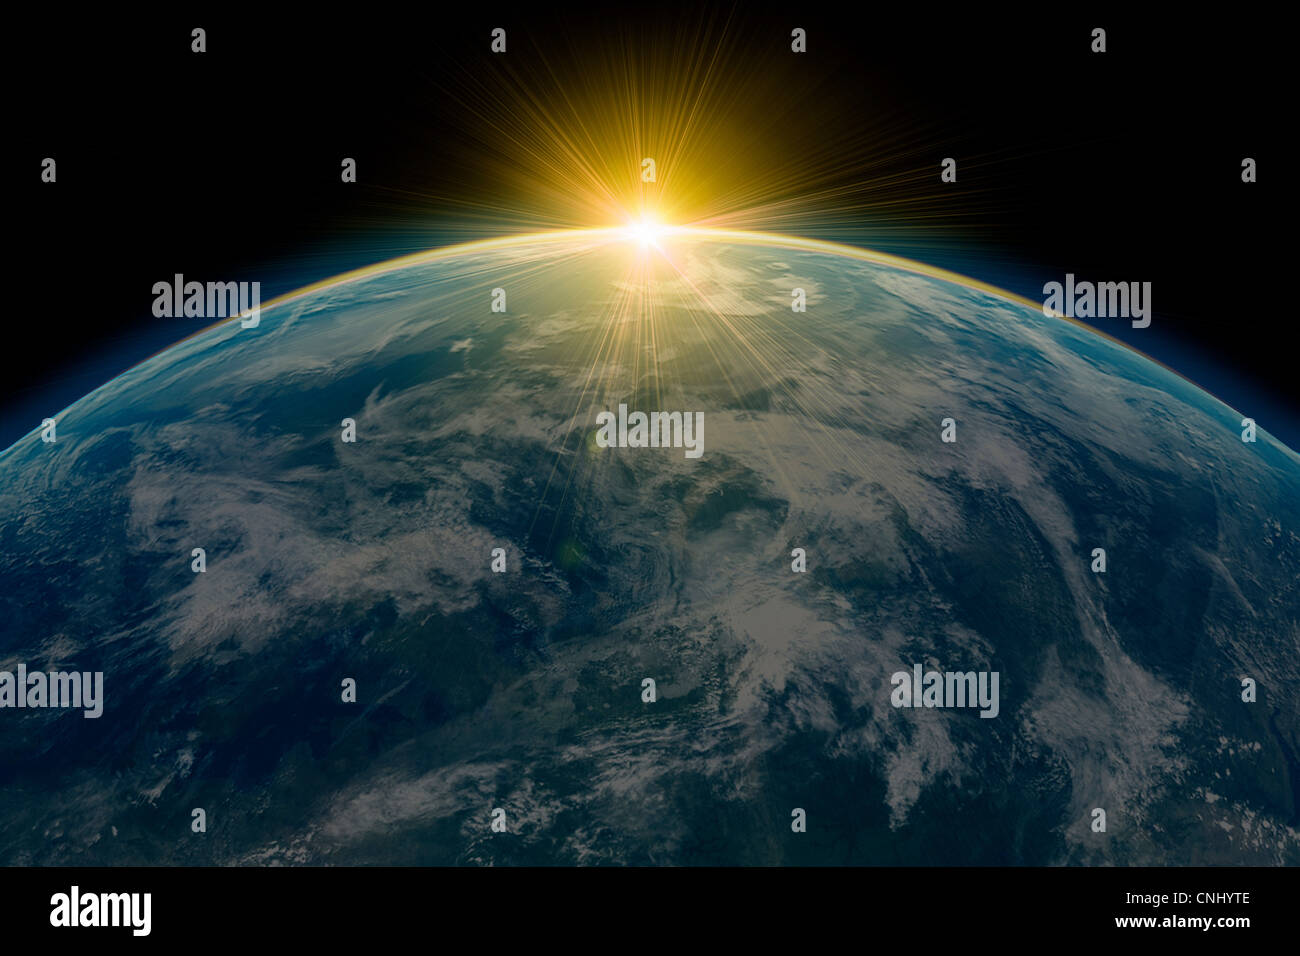 Sunrise over planet earth - Stock Image